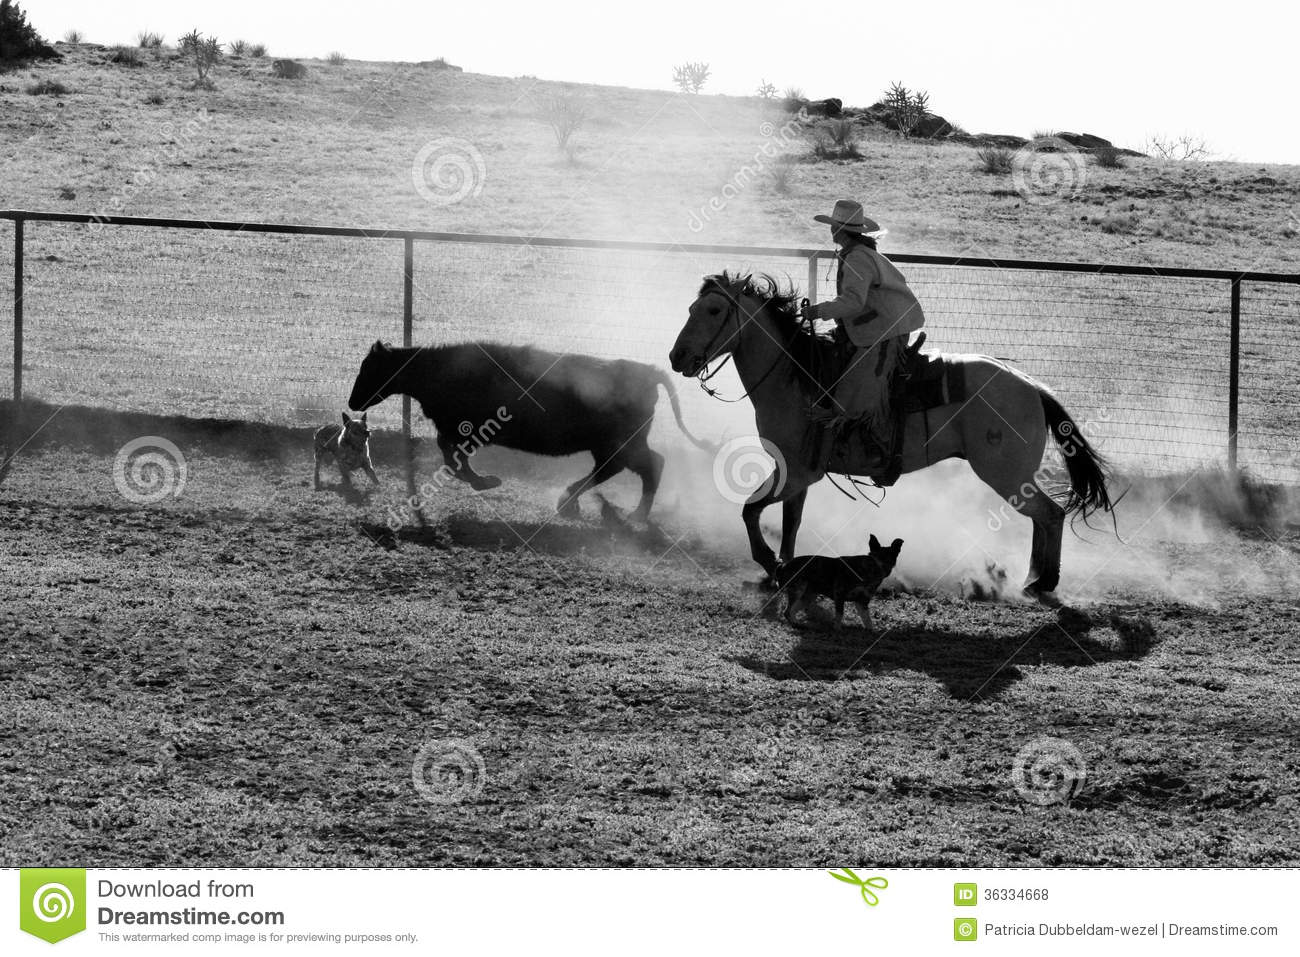 the life of a cowboy The cowboy is the archetypical character of the western, perhaps the quintessential american hero horrible histories had a musical number describing what the life of a working cowboy was actually like one episode of firefly has mal meeting some cattle buyers.